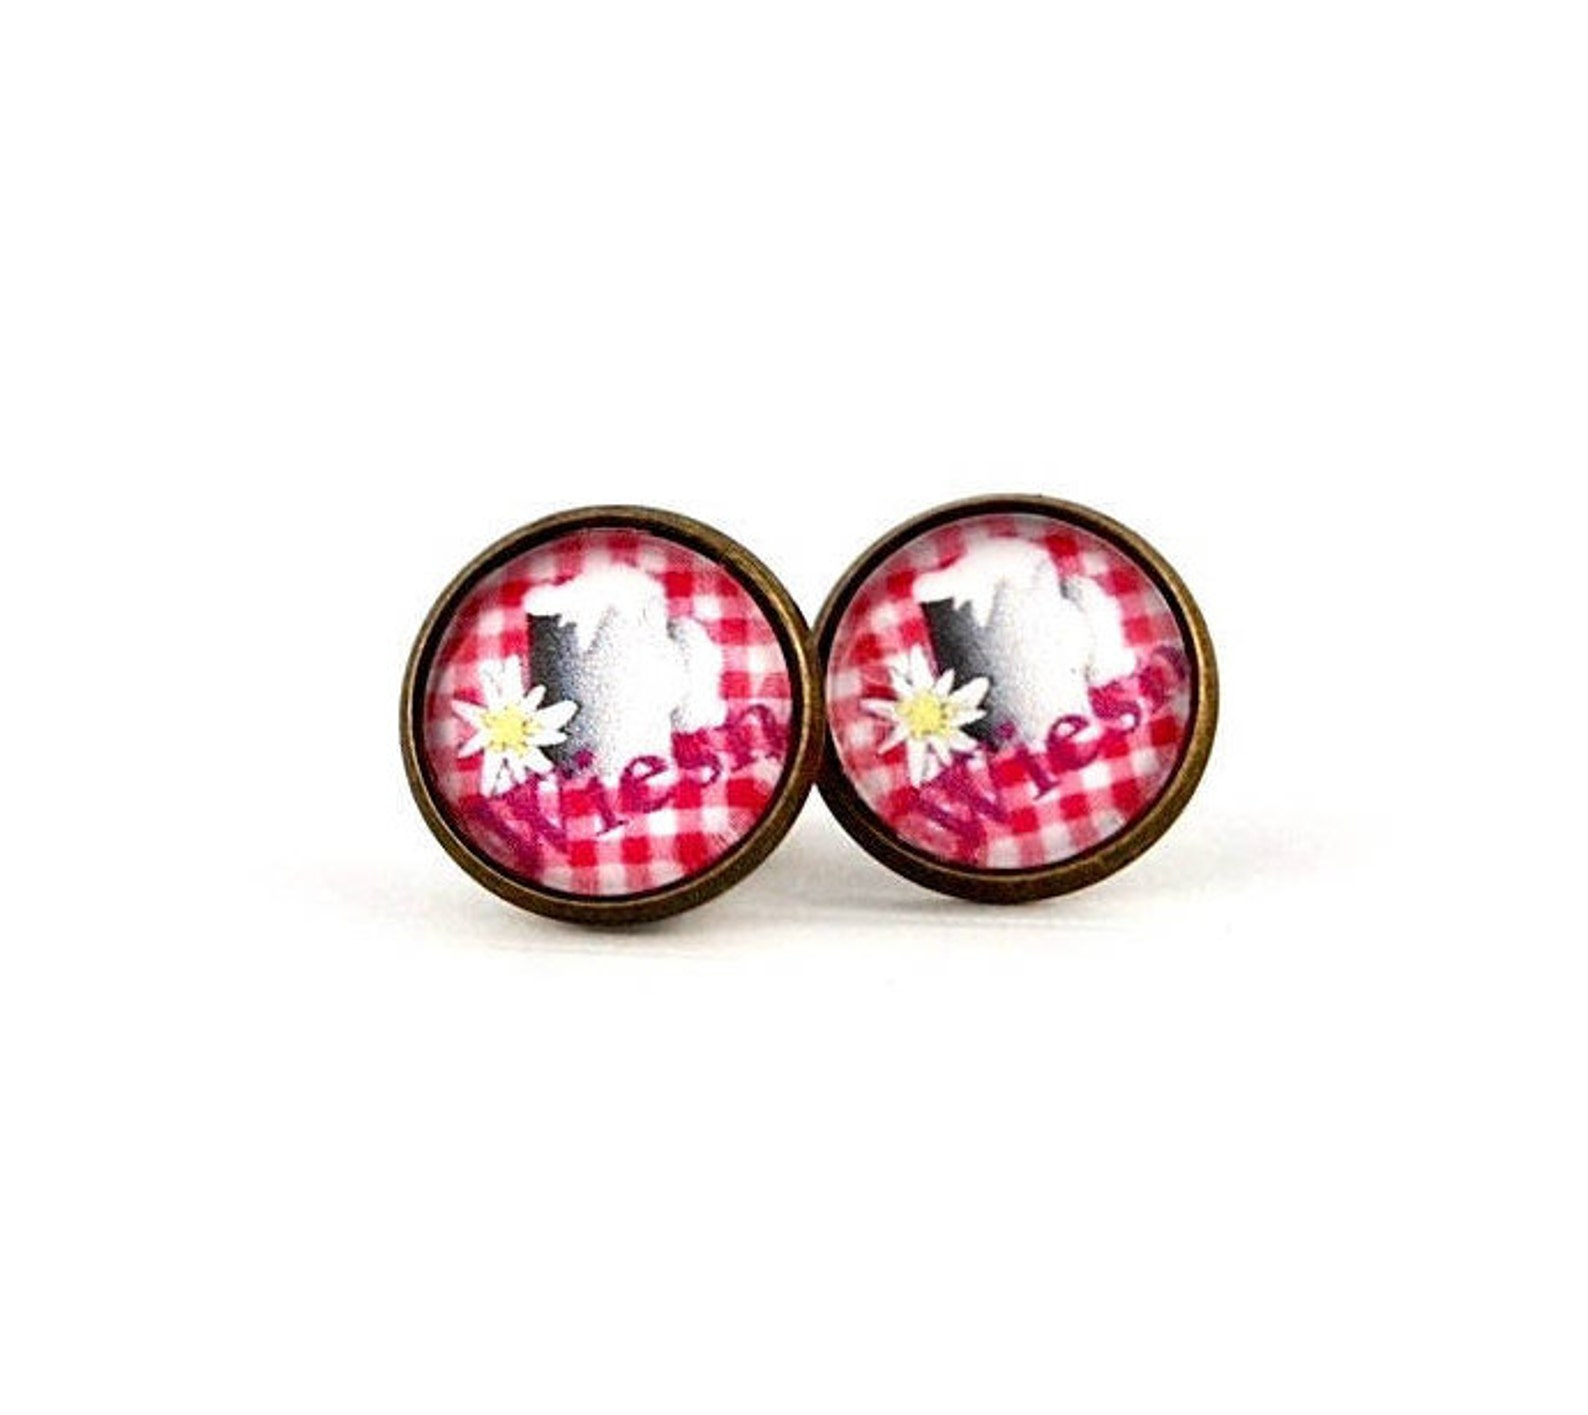 Edelweiss Earrings Pink, size on diamonds, cabochon-stud earrings 10-12 mm, earrings bronze, Oktoberfest, meadows, dome earrings, handmade